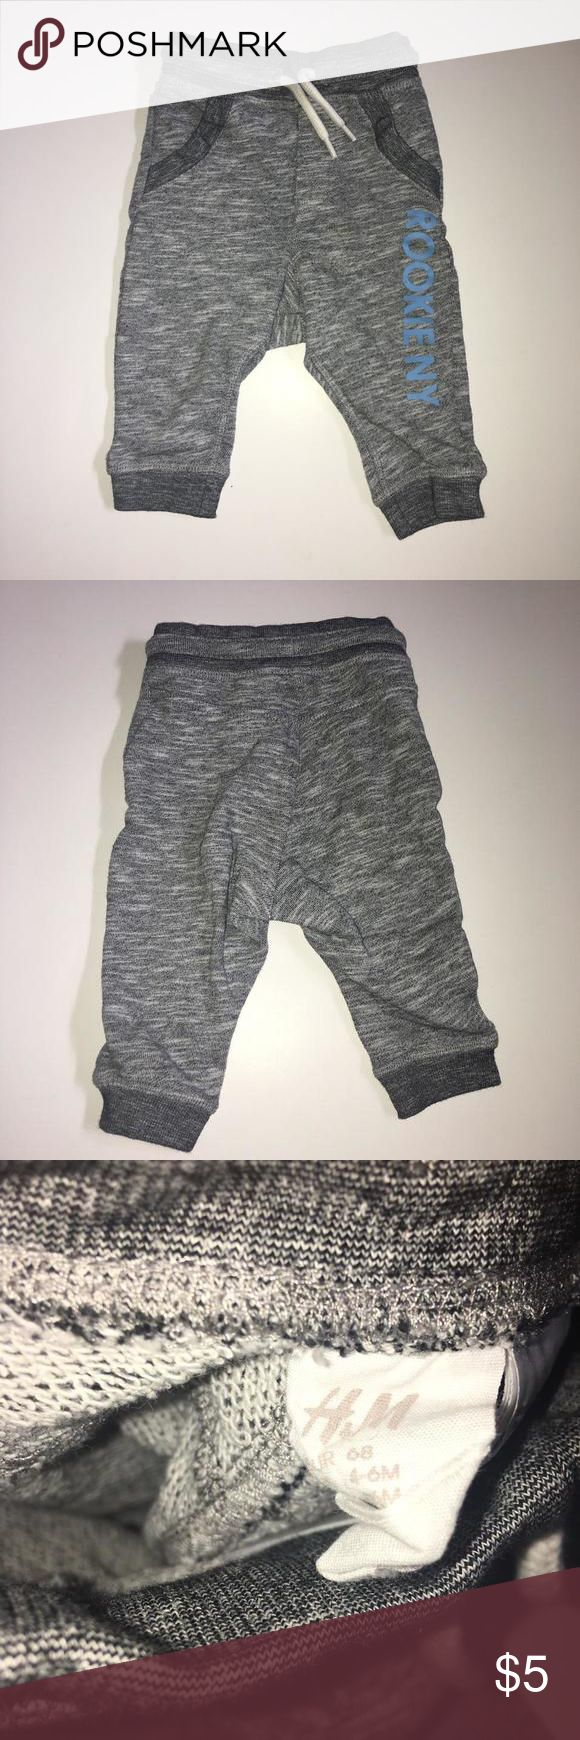 H&M trousers Excellent condition comes from smoke and pet free home.  Tag says 4-6 months H&M Kids Shirts & Tops